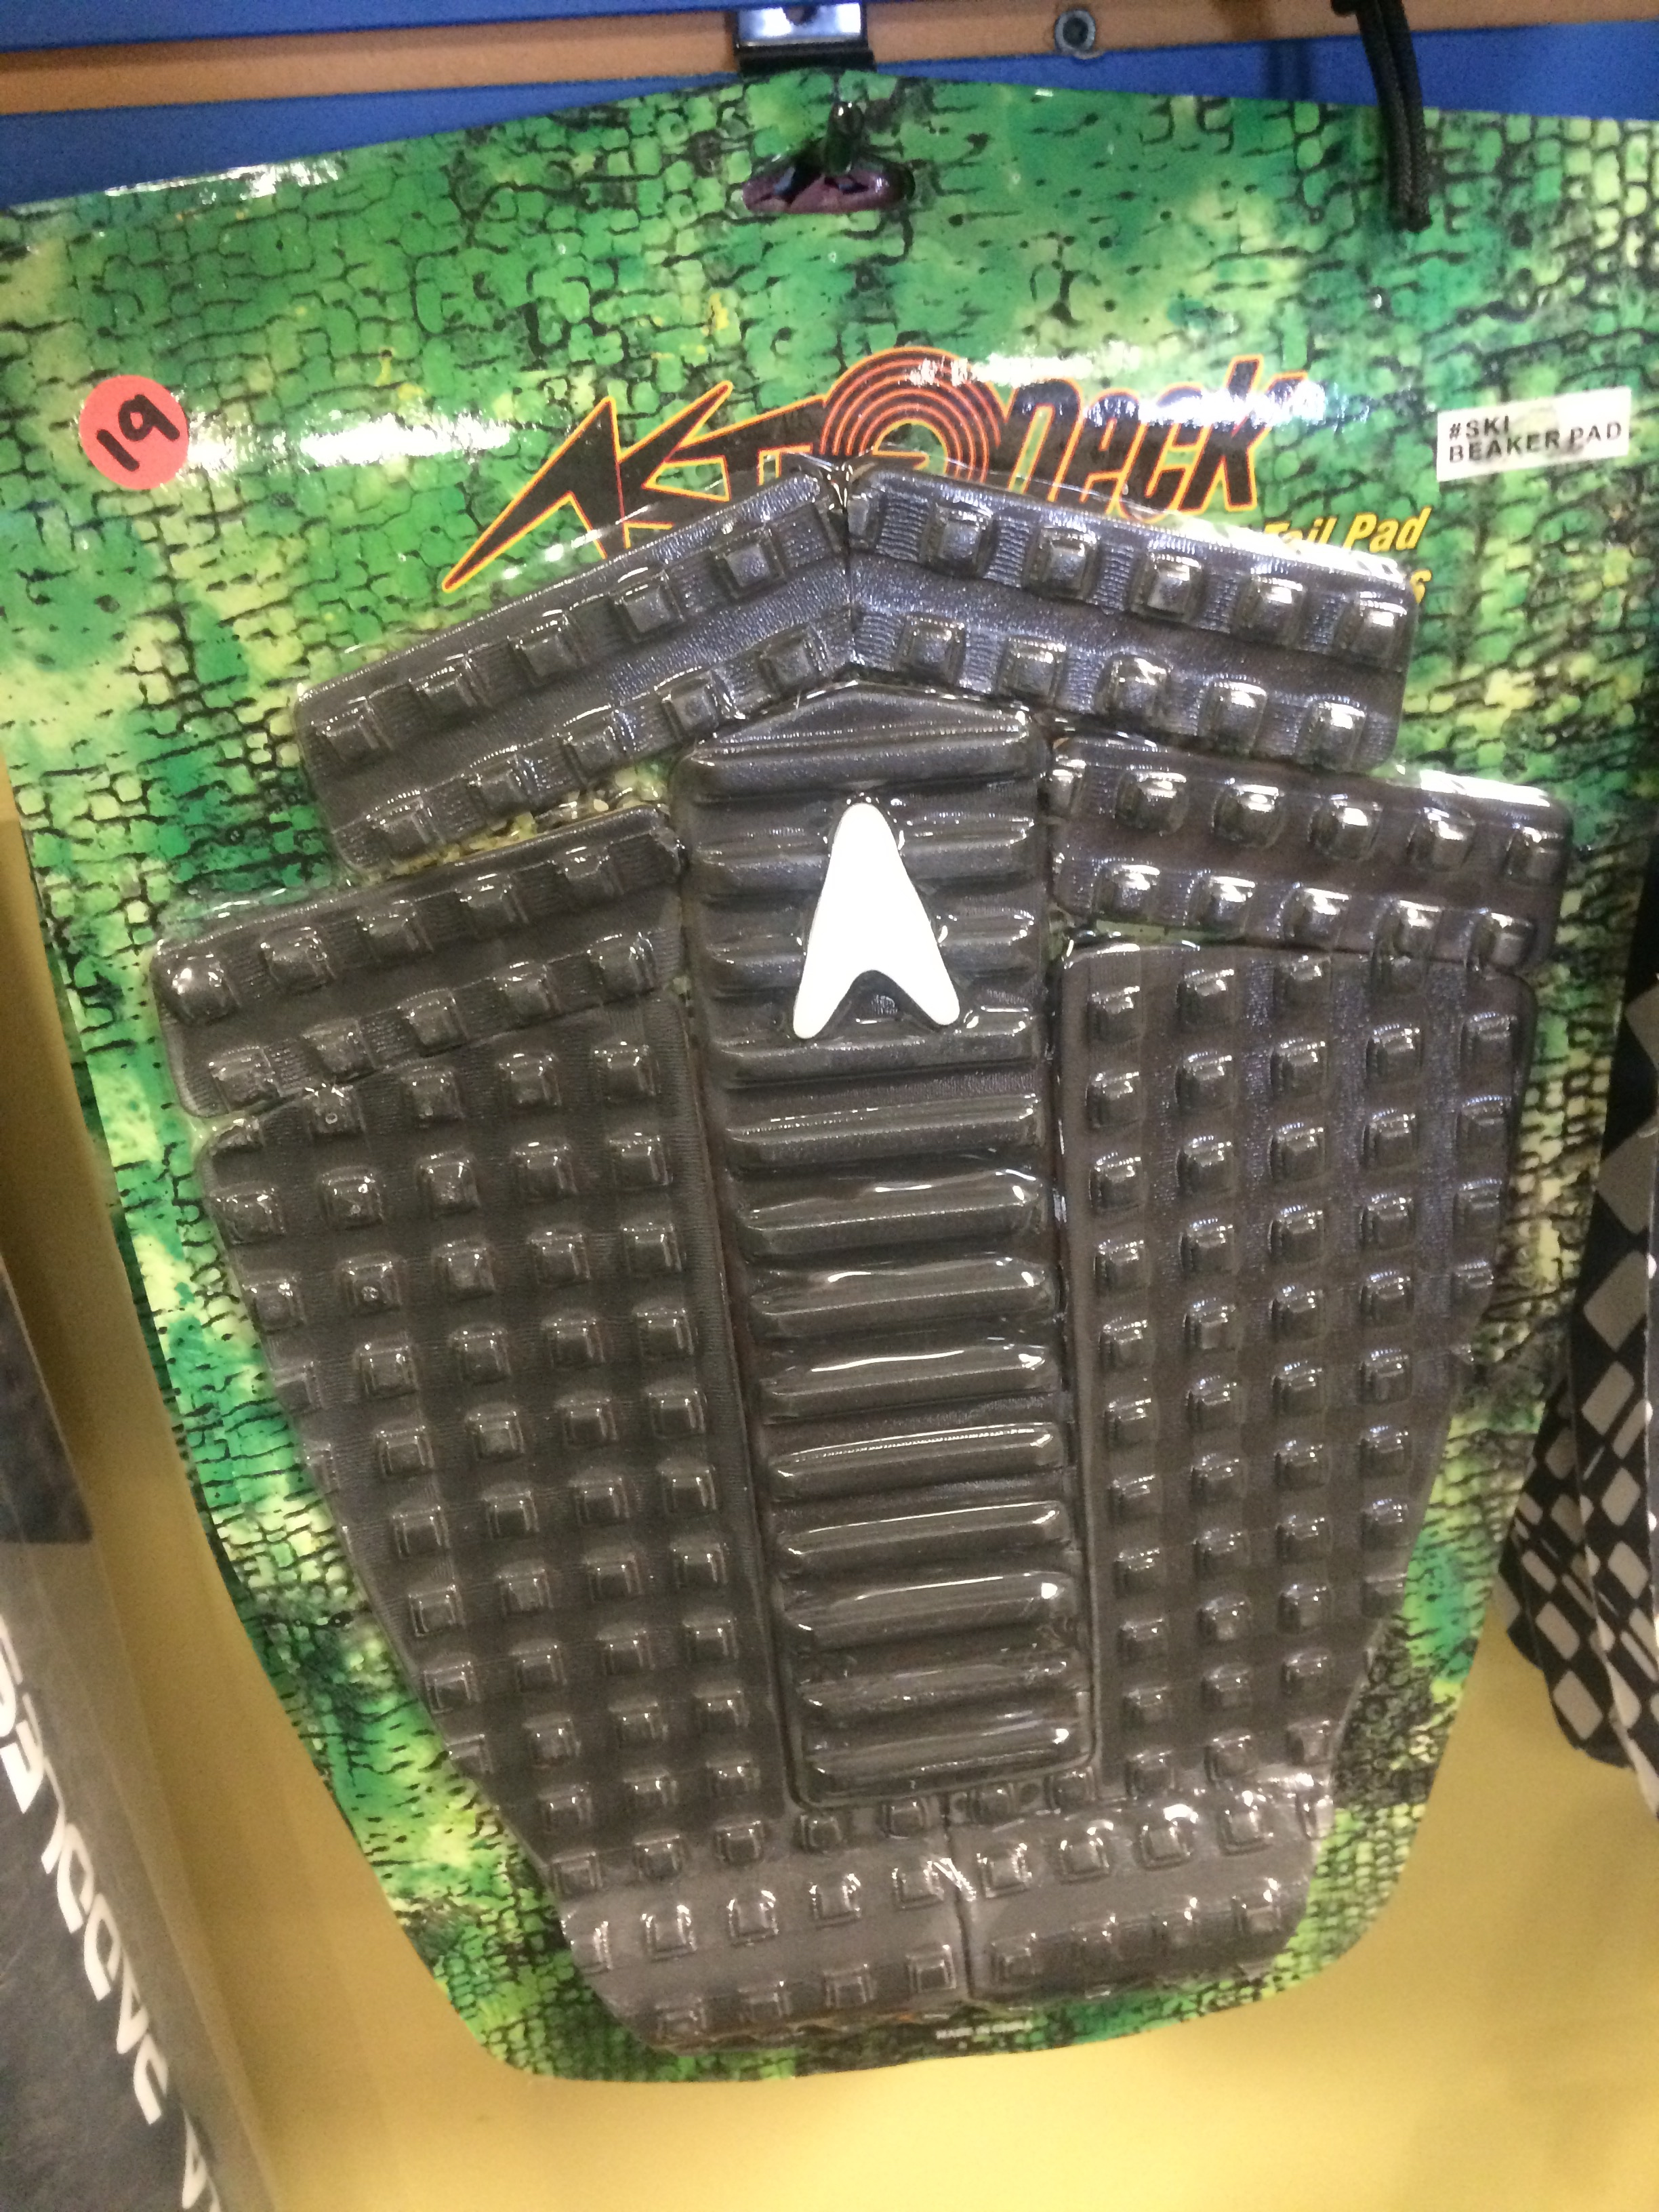 Astrodeck board pads